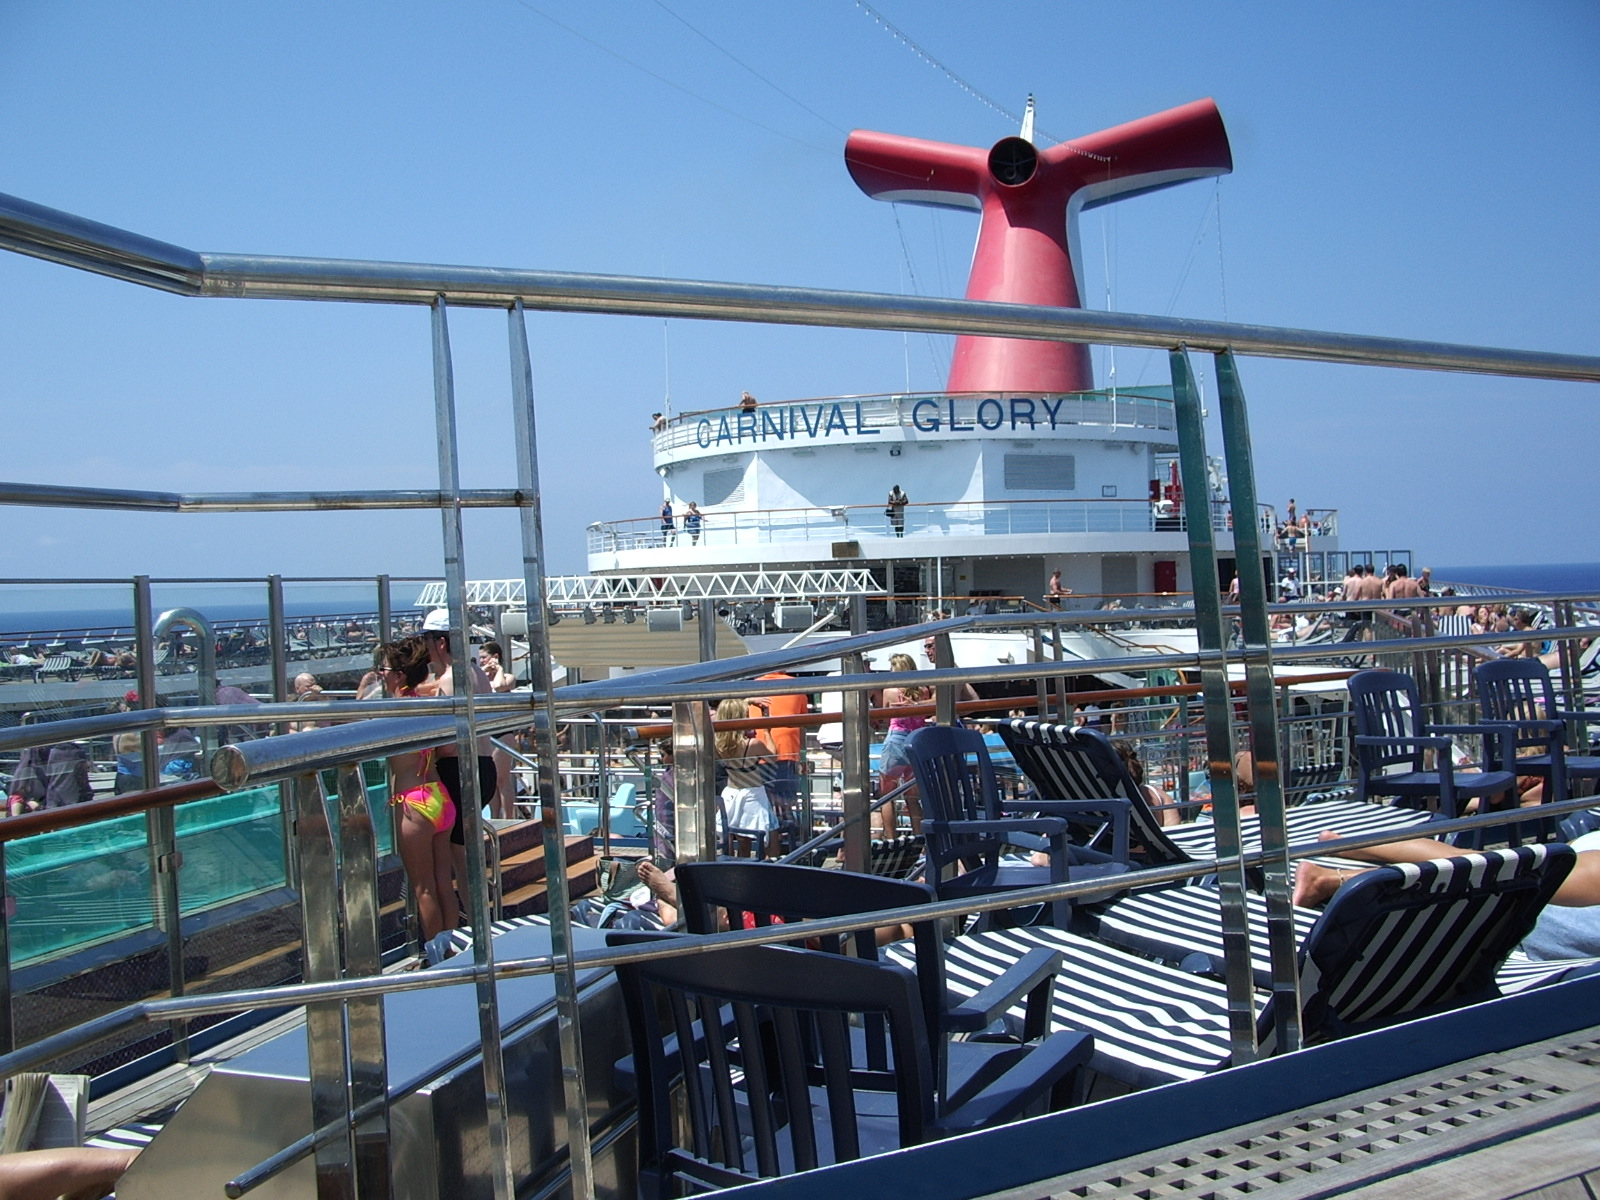 View What Is There To Do On The Carnival Glory  Gif